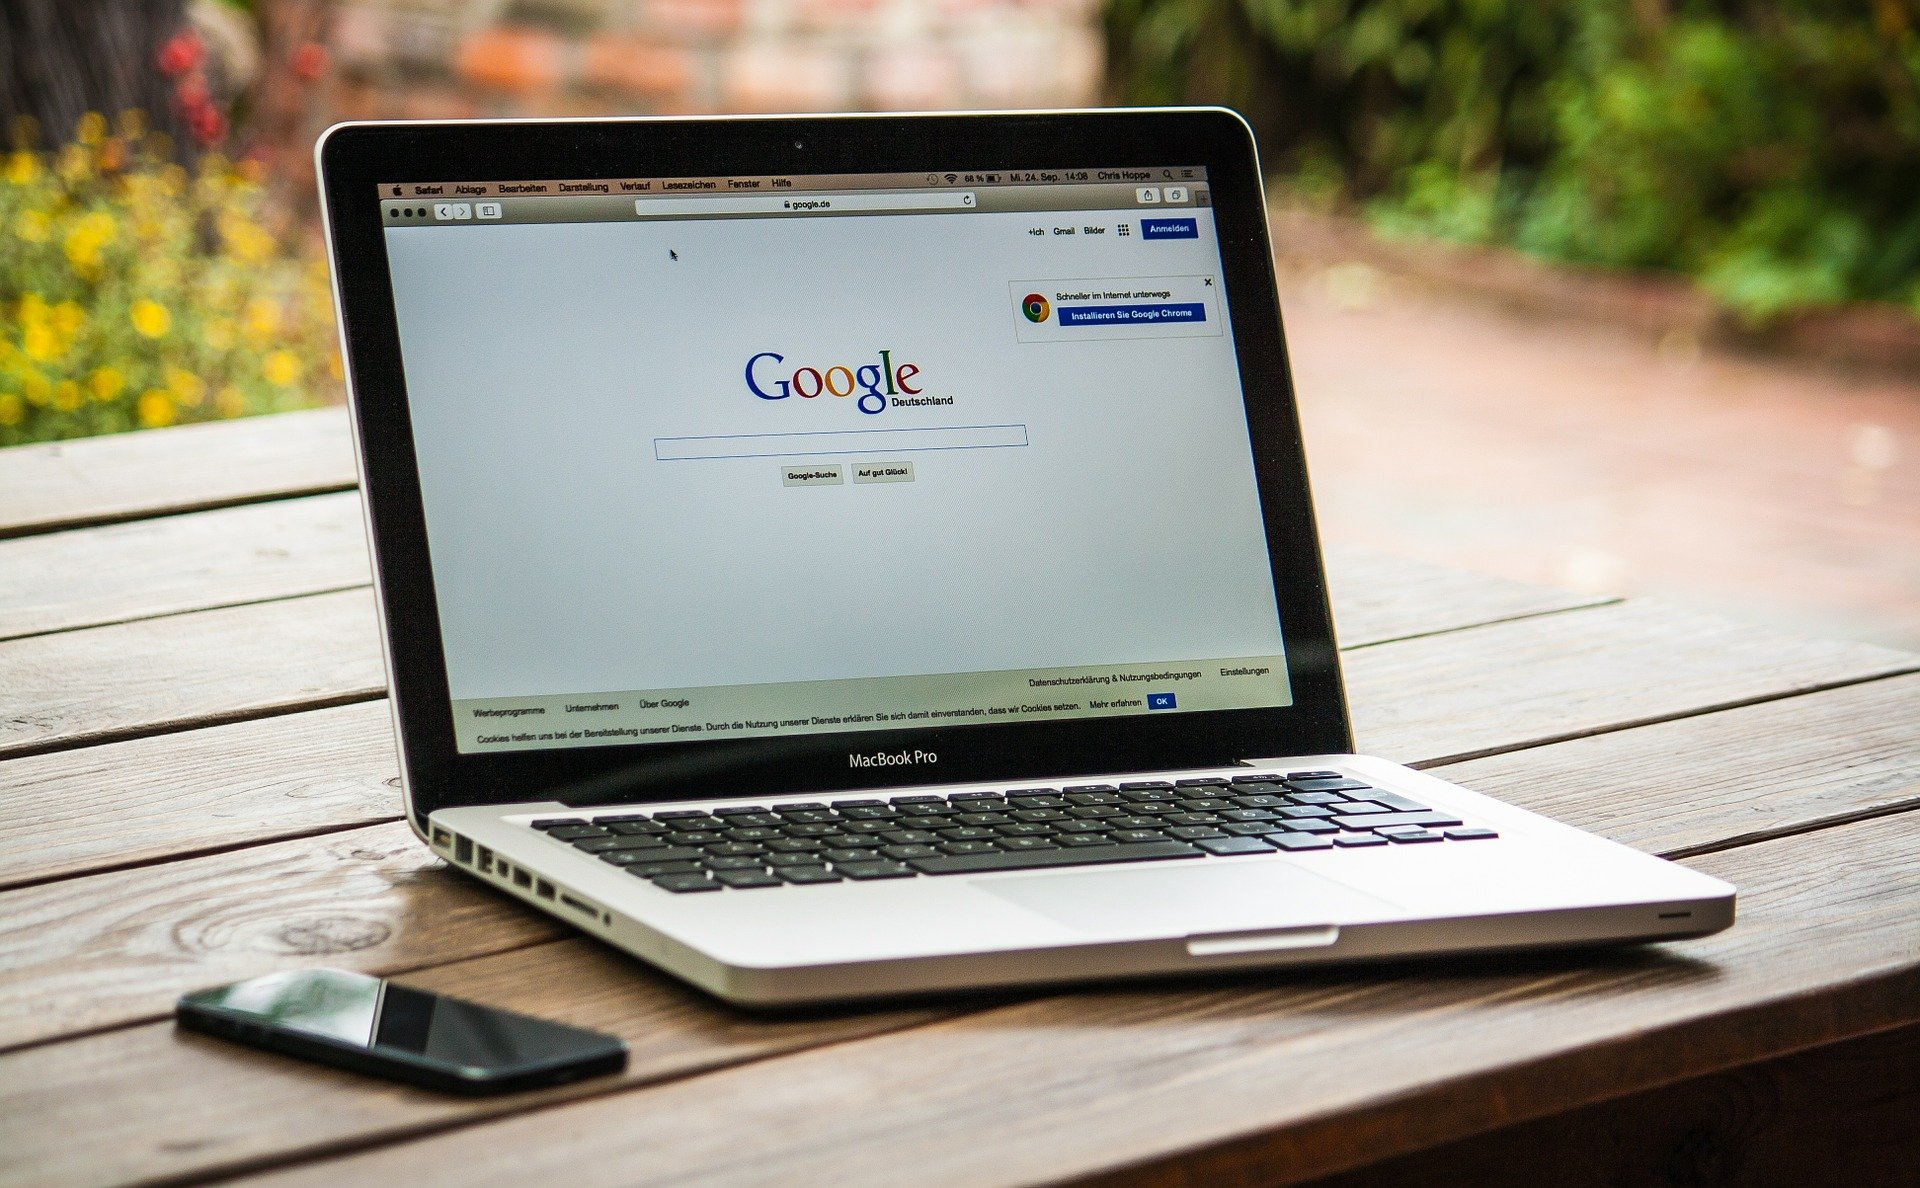 Laptop with Google web page open